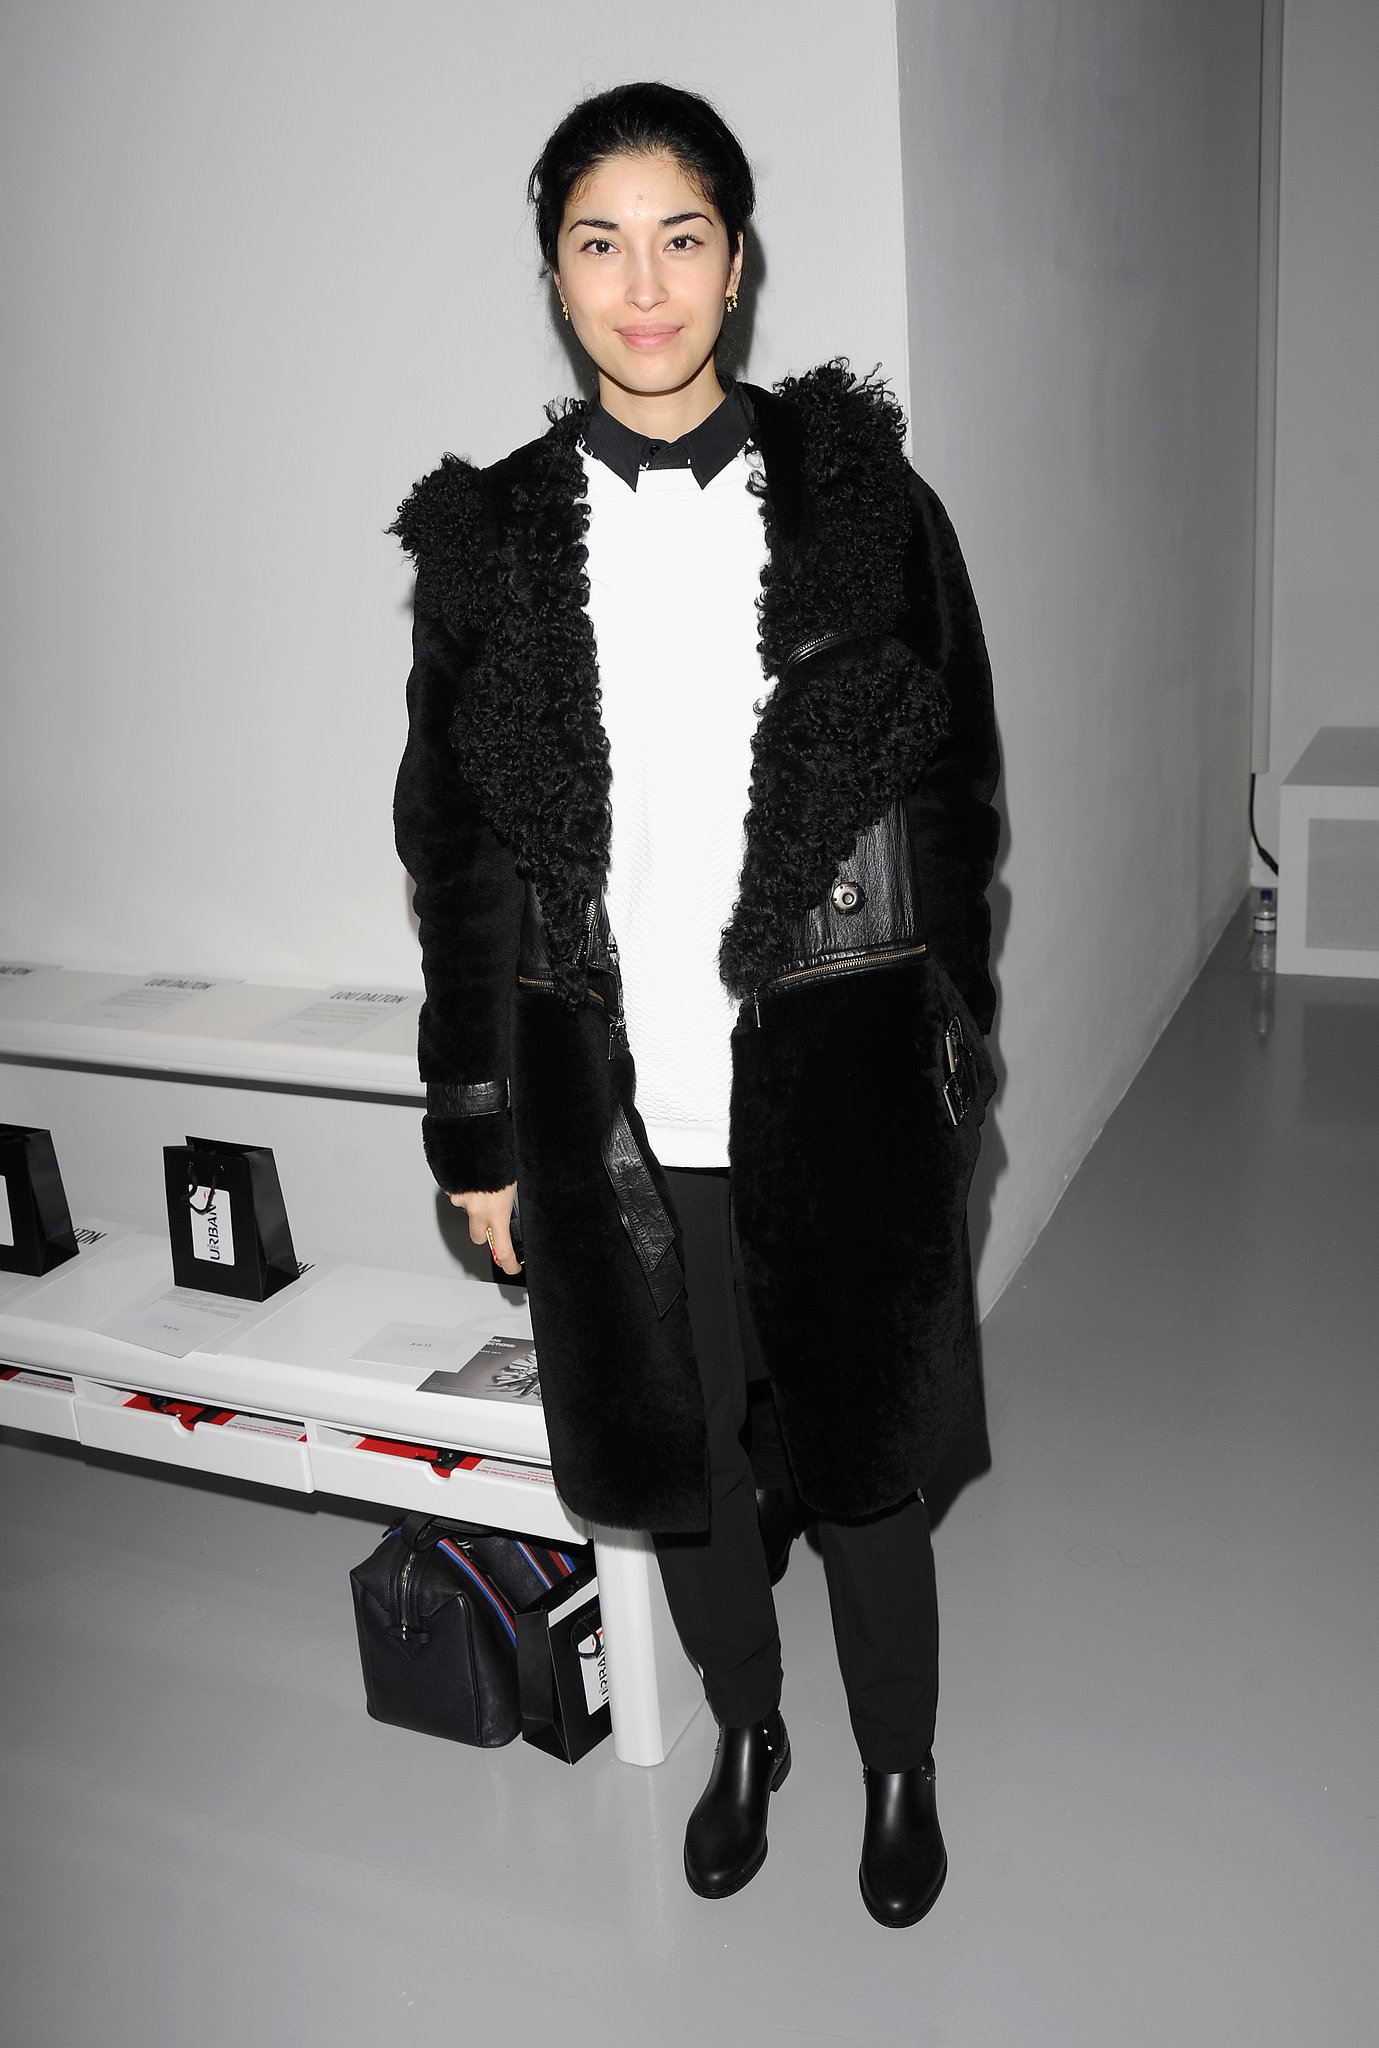 Caroline Issa at the Topman Men's Fashion Week show.